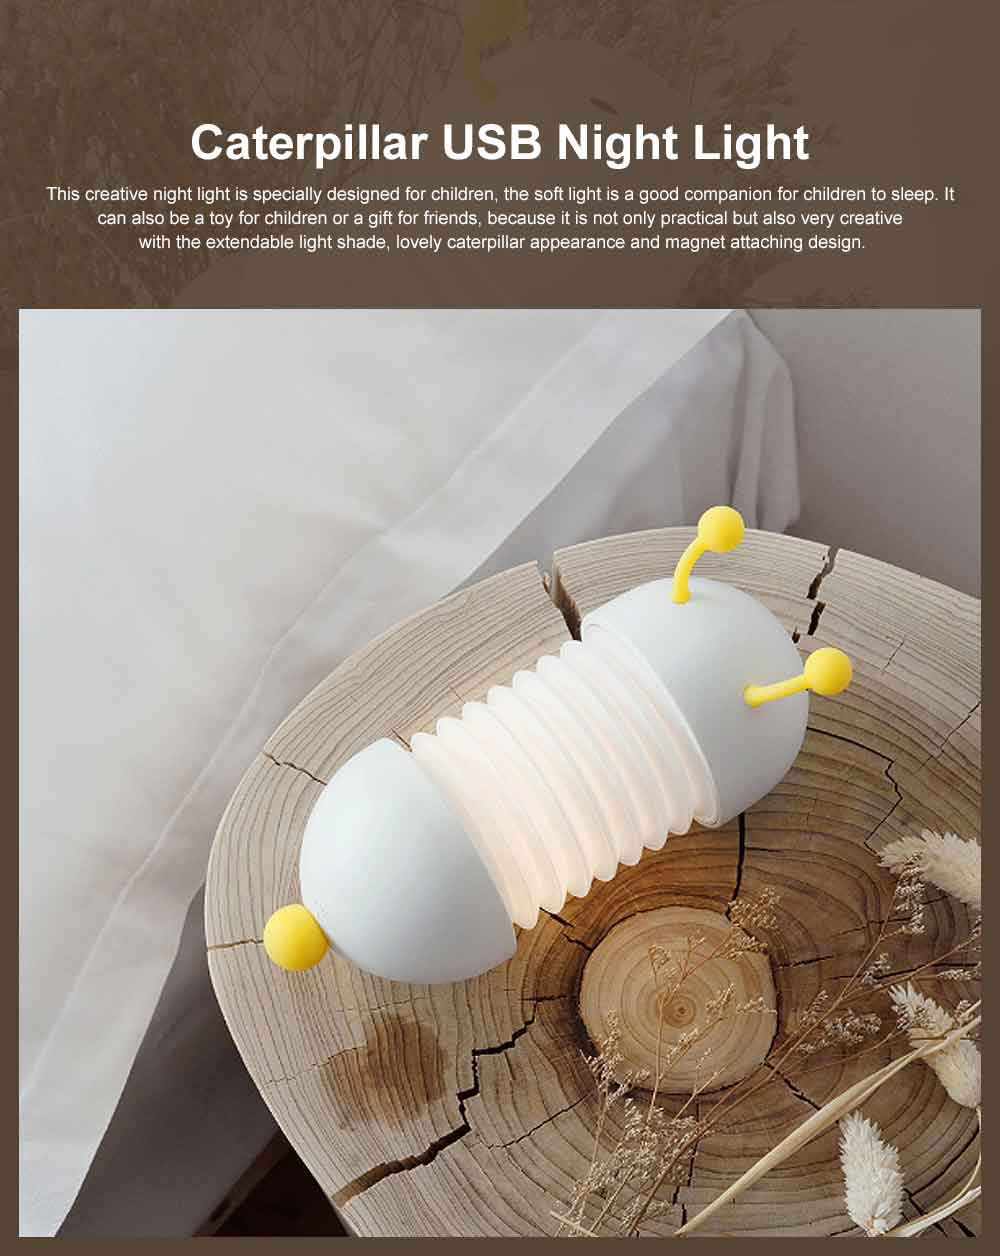 Creative USB LED Rechargeable Wall Lamp with Soft Light, Caterpillar Night Light for Children to Sleep Restful. 0